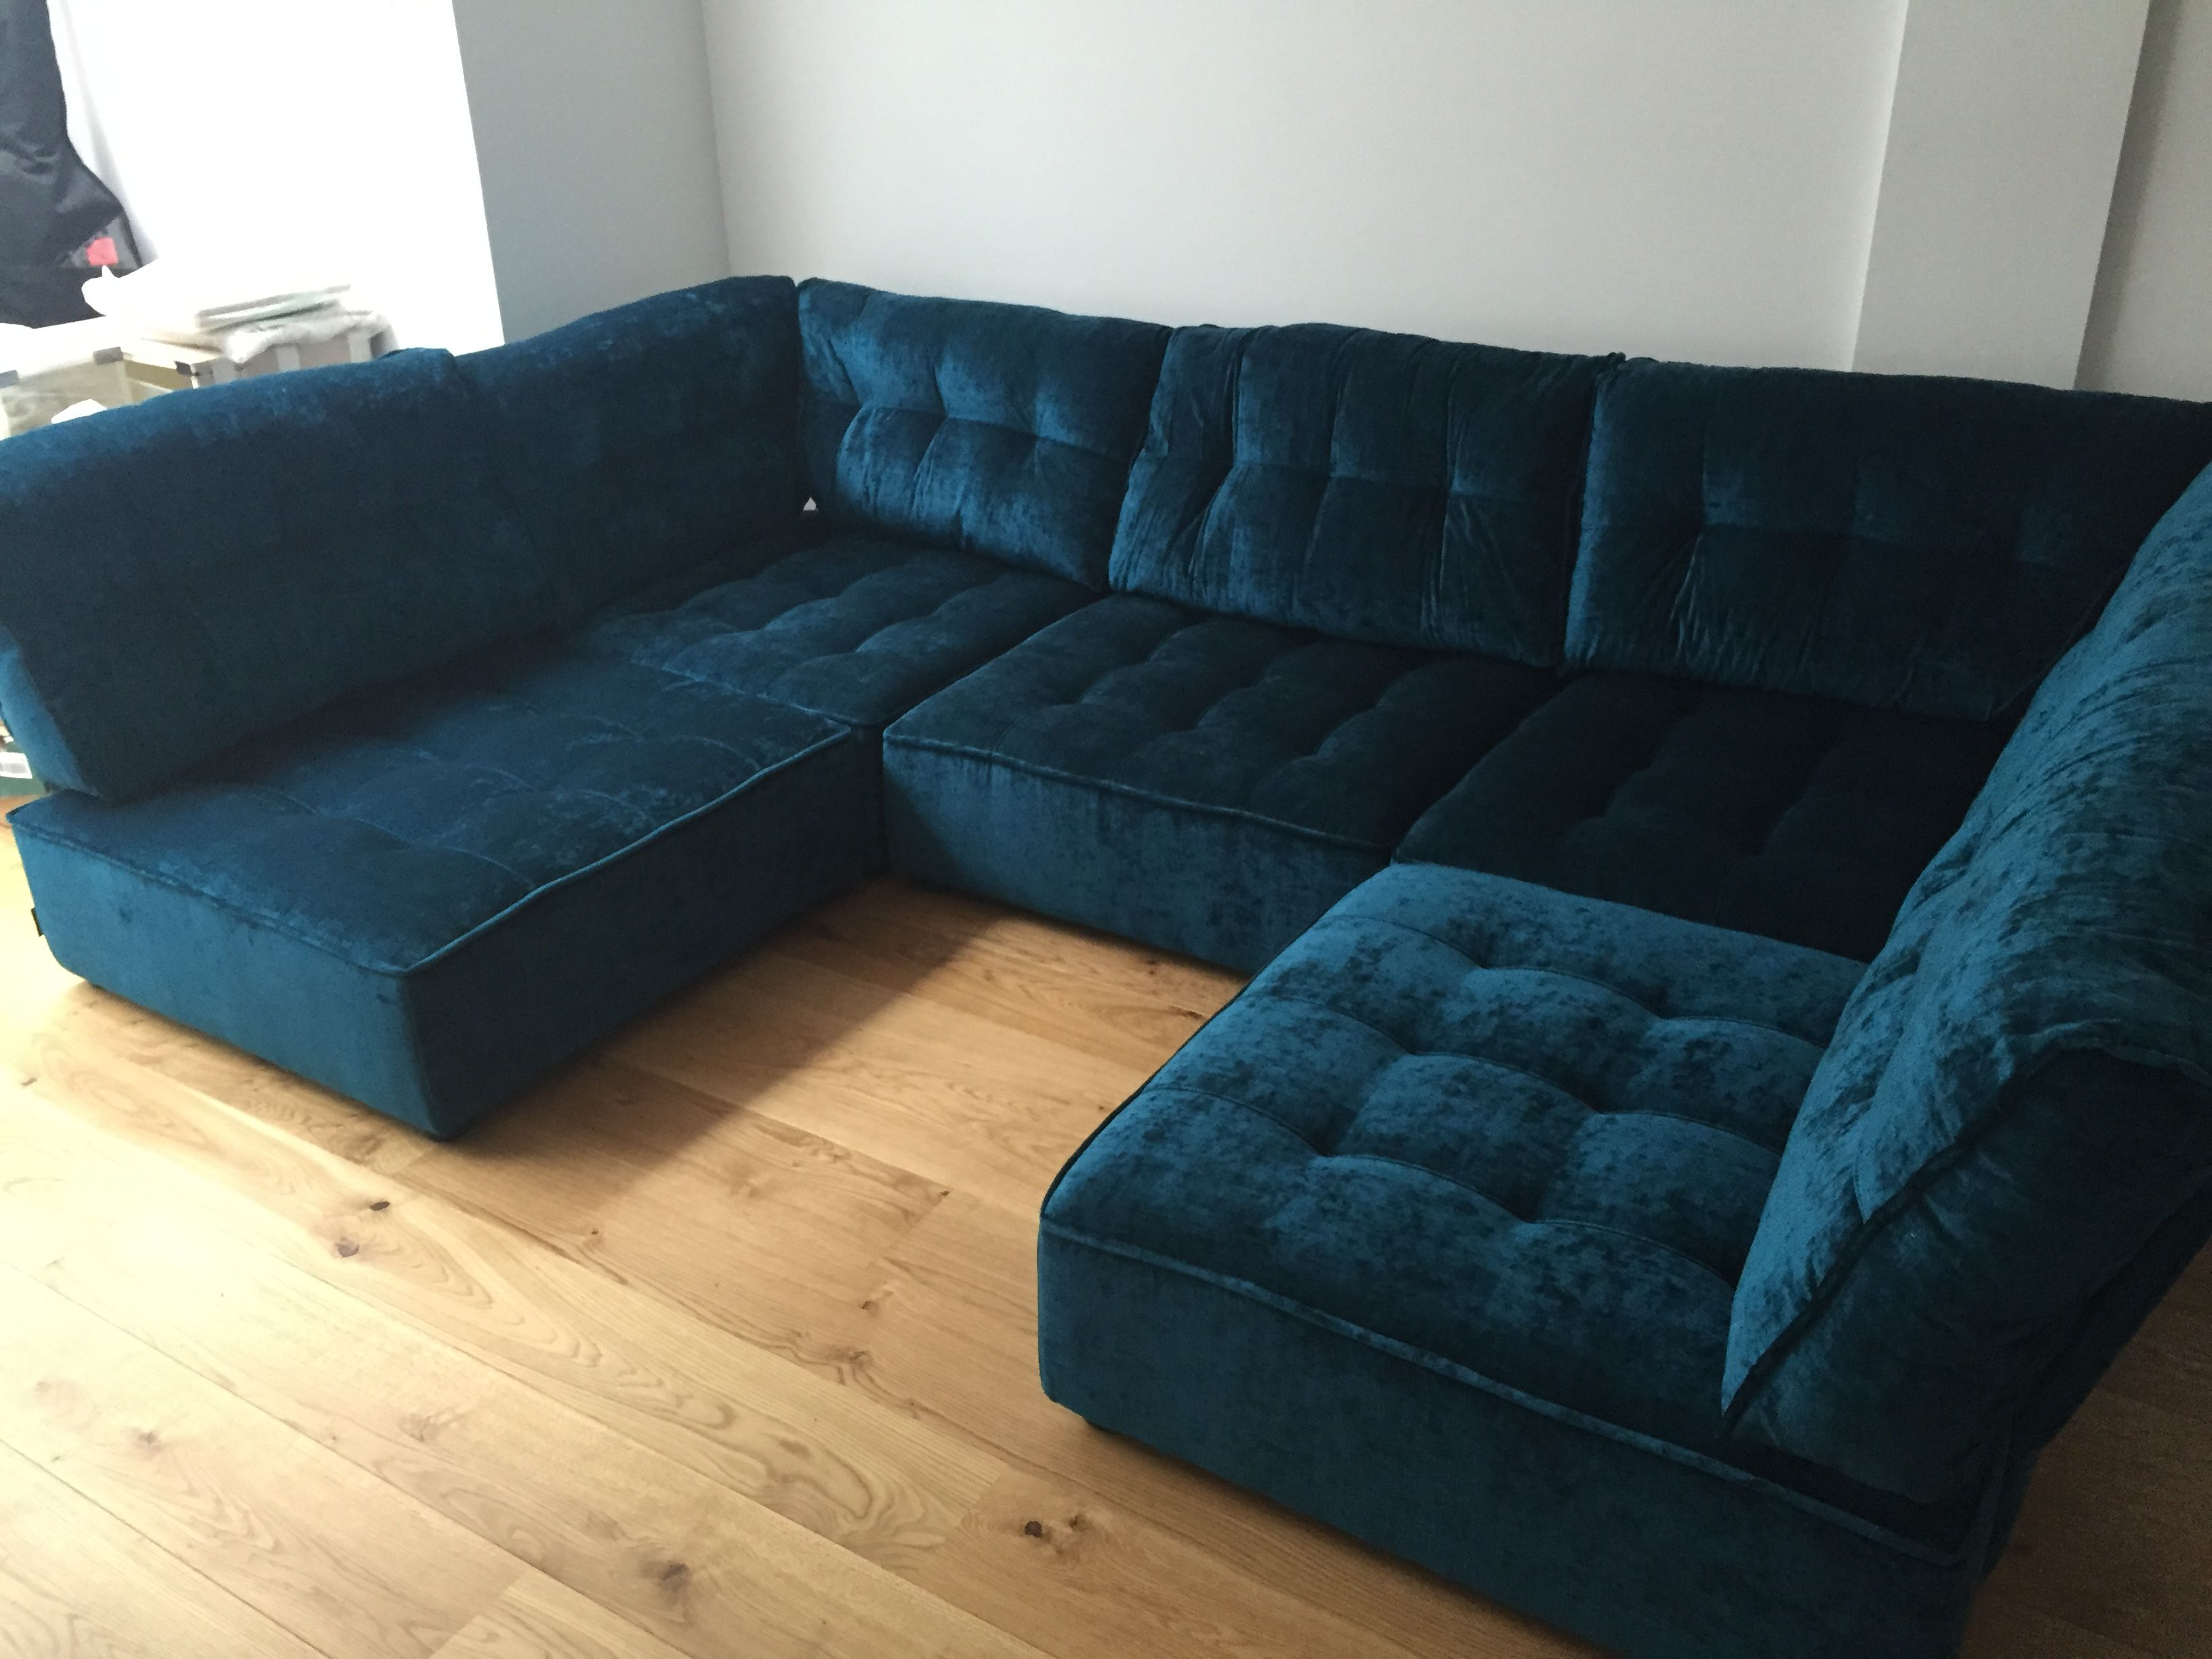 Petrol Slub Velvet From Ross Fabrics Pistache Range Modular Unit Home Decor Sectional Couch